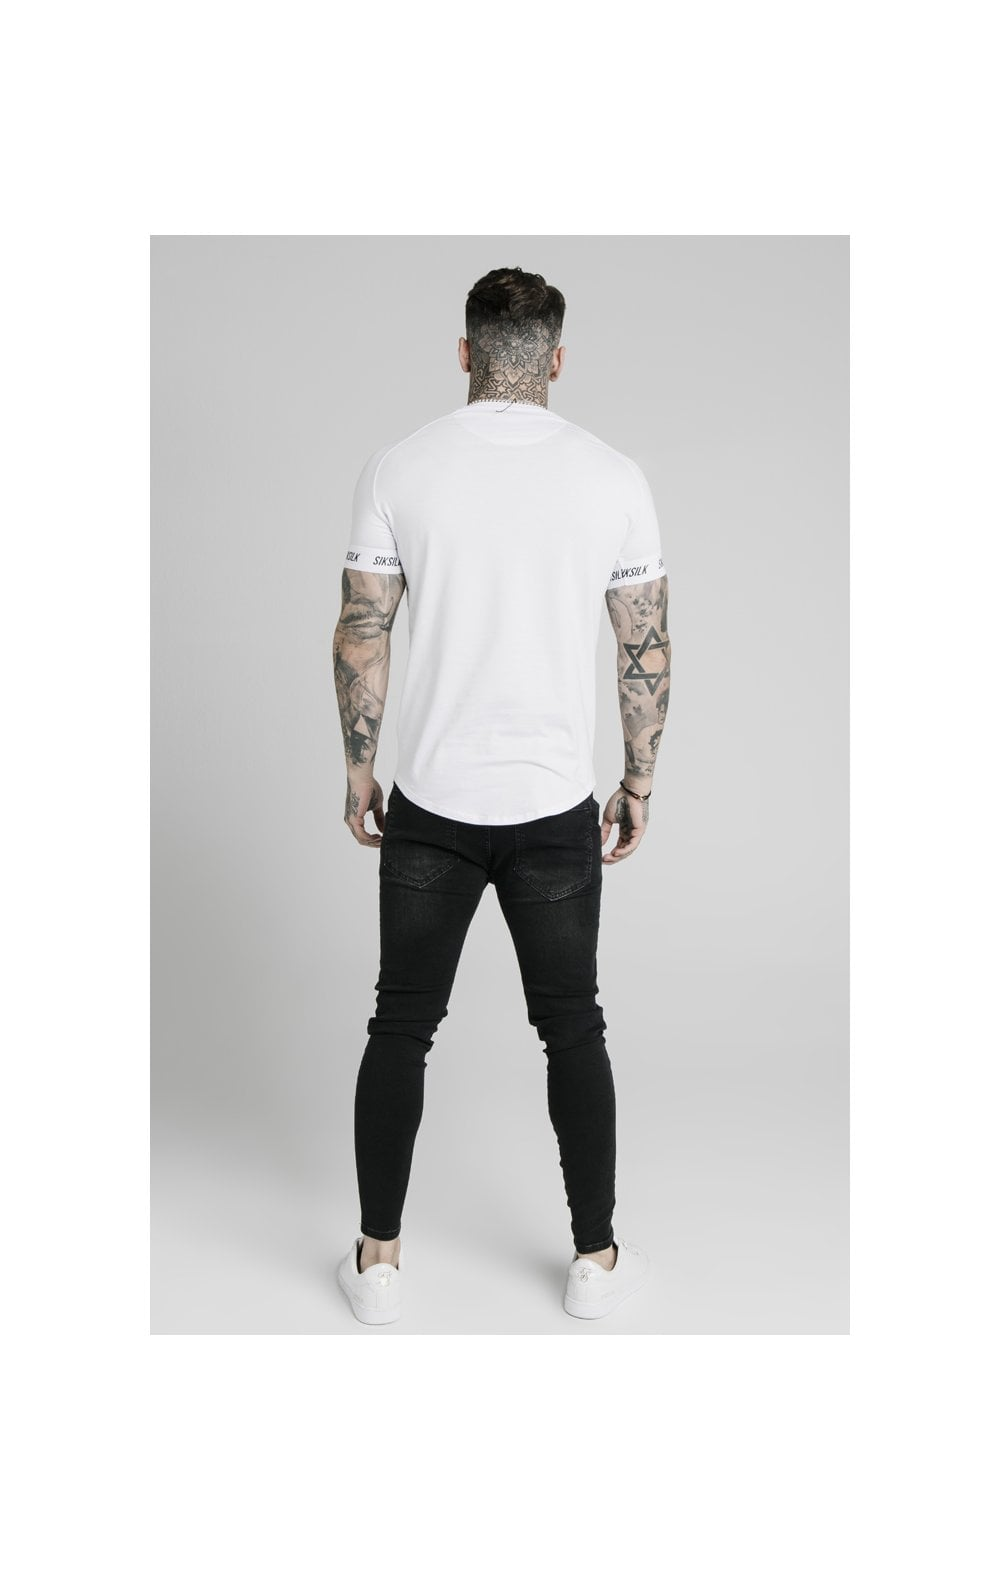 Load image into Gallery viewer, SikSilk S/S Raglan Tech Tee - White (4)